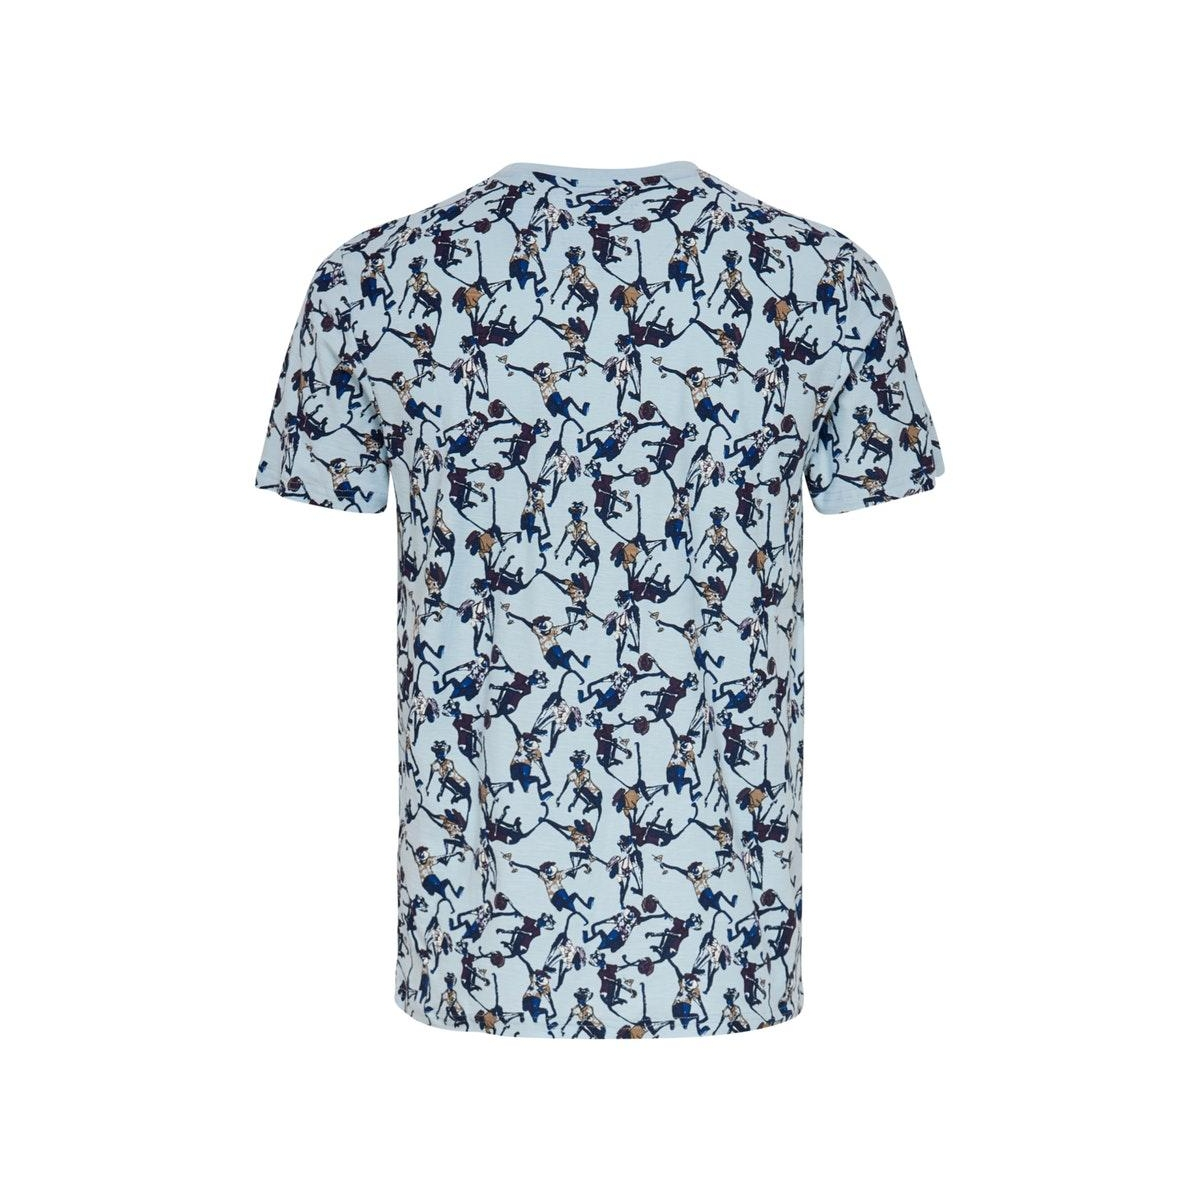 onsedgarki life slim ss tee nf 6542 22016542 only & sons t-shirt cashmere blue